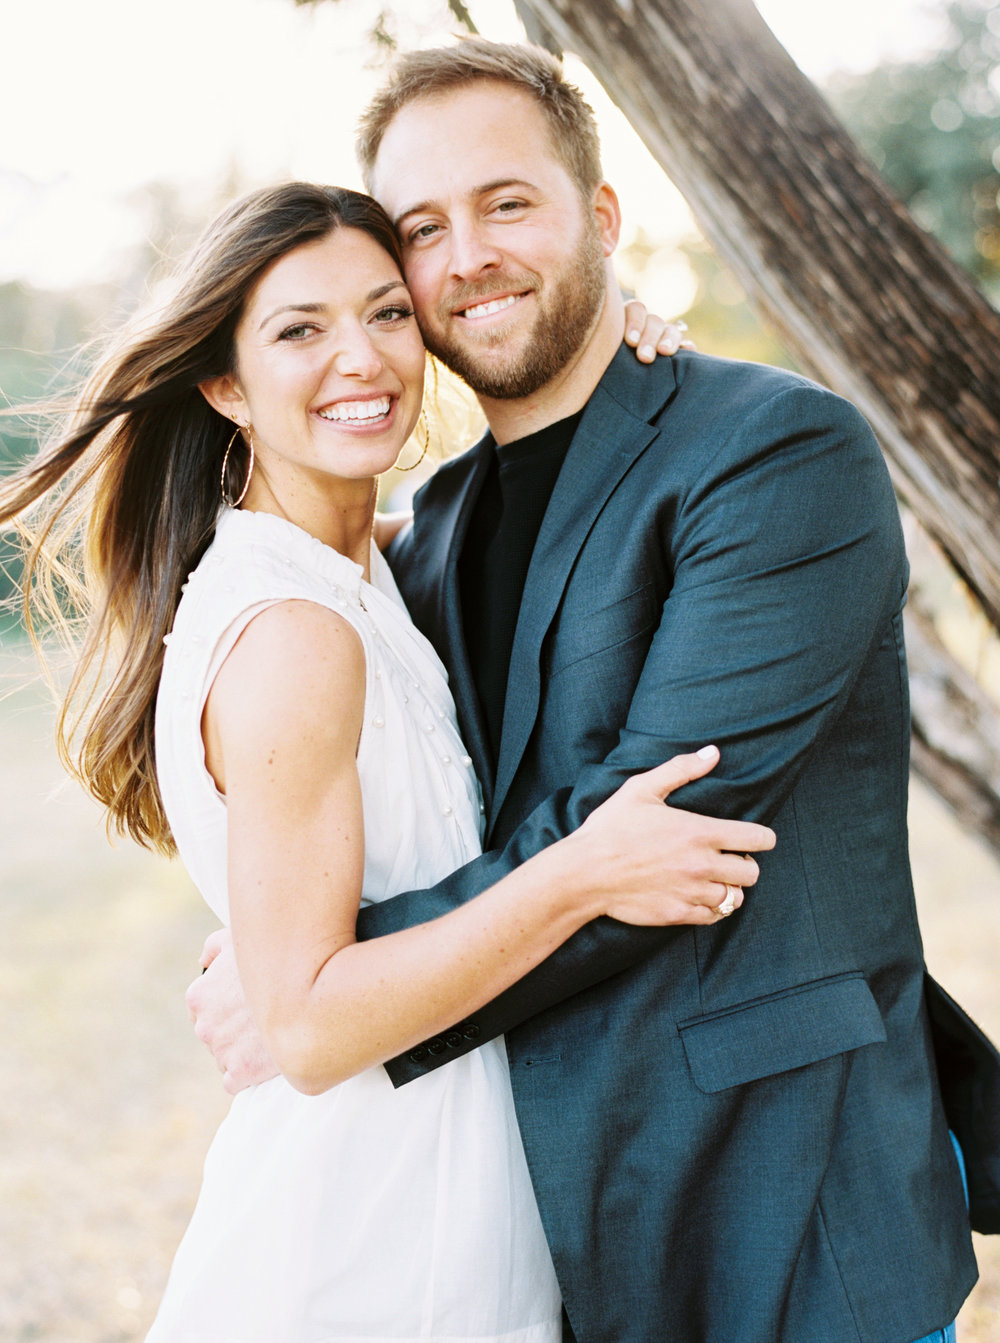 Engagement Session Outfits-155.jpg